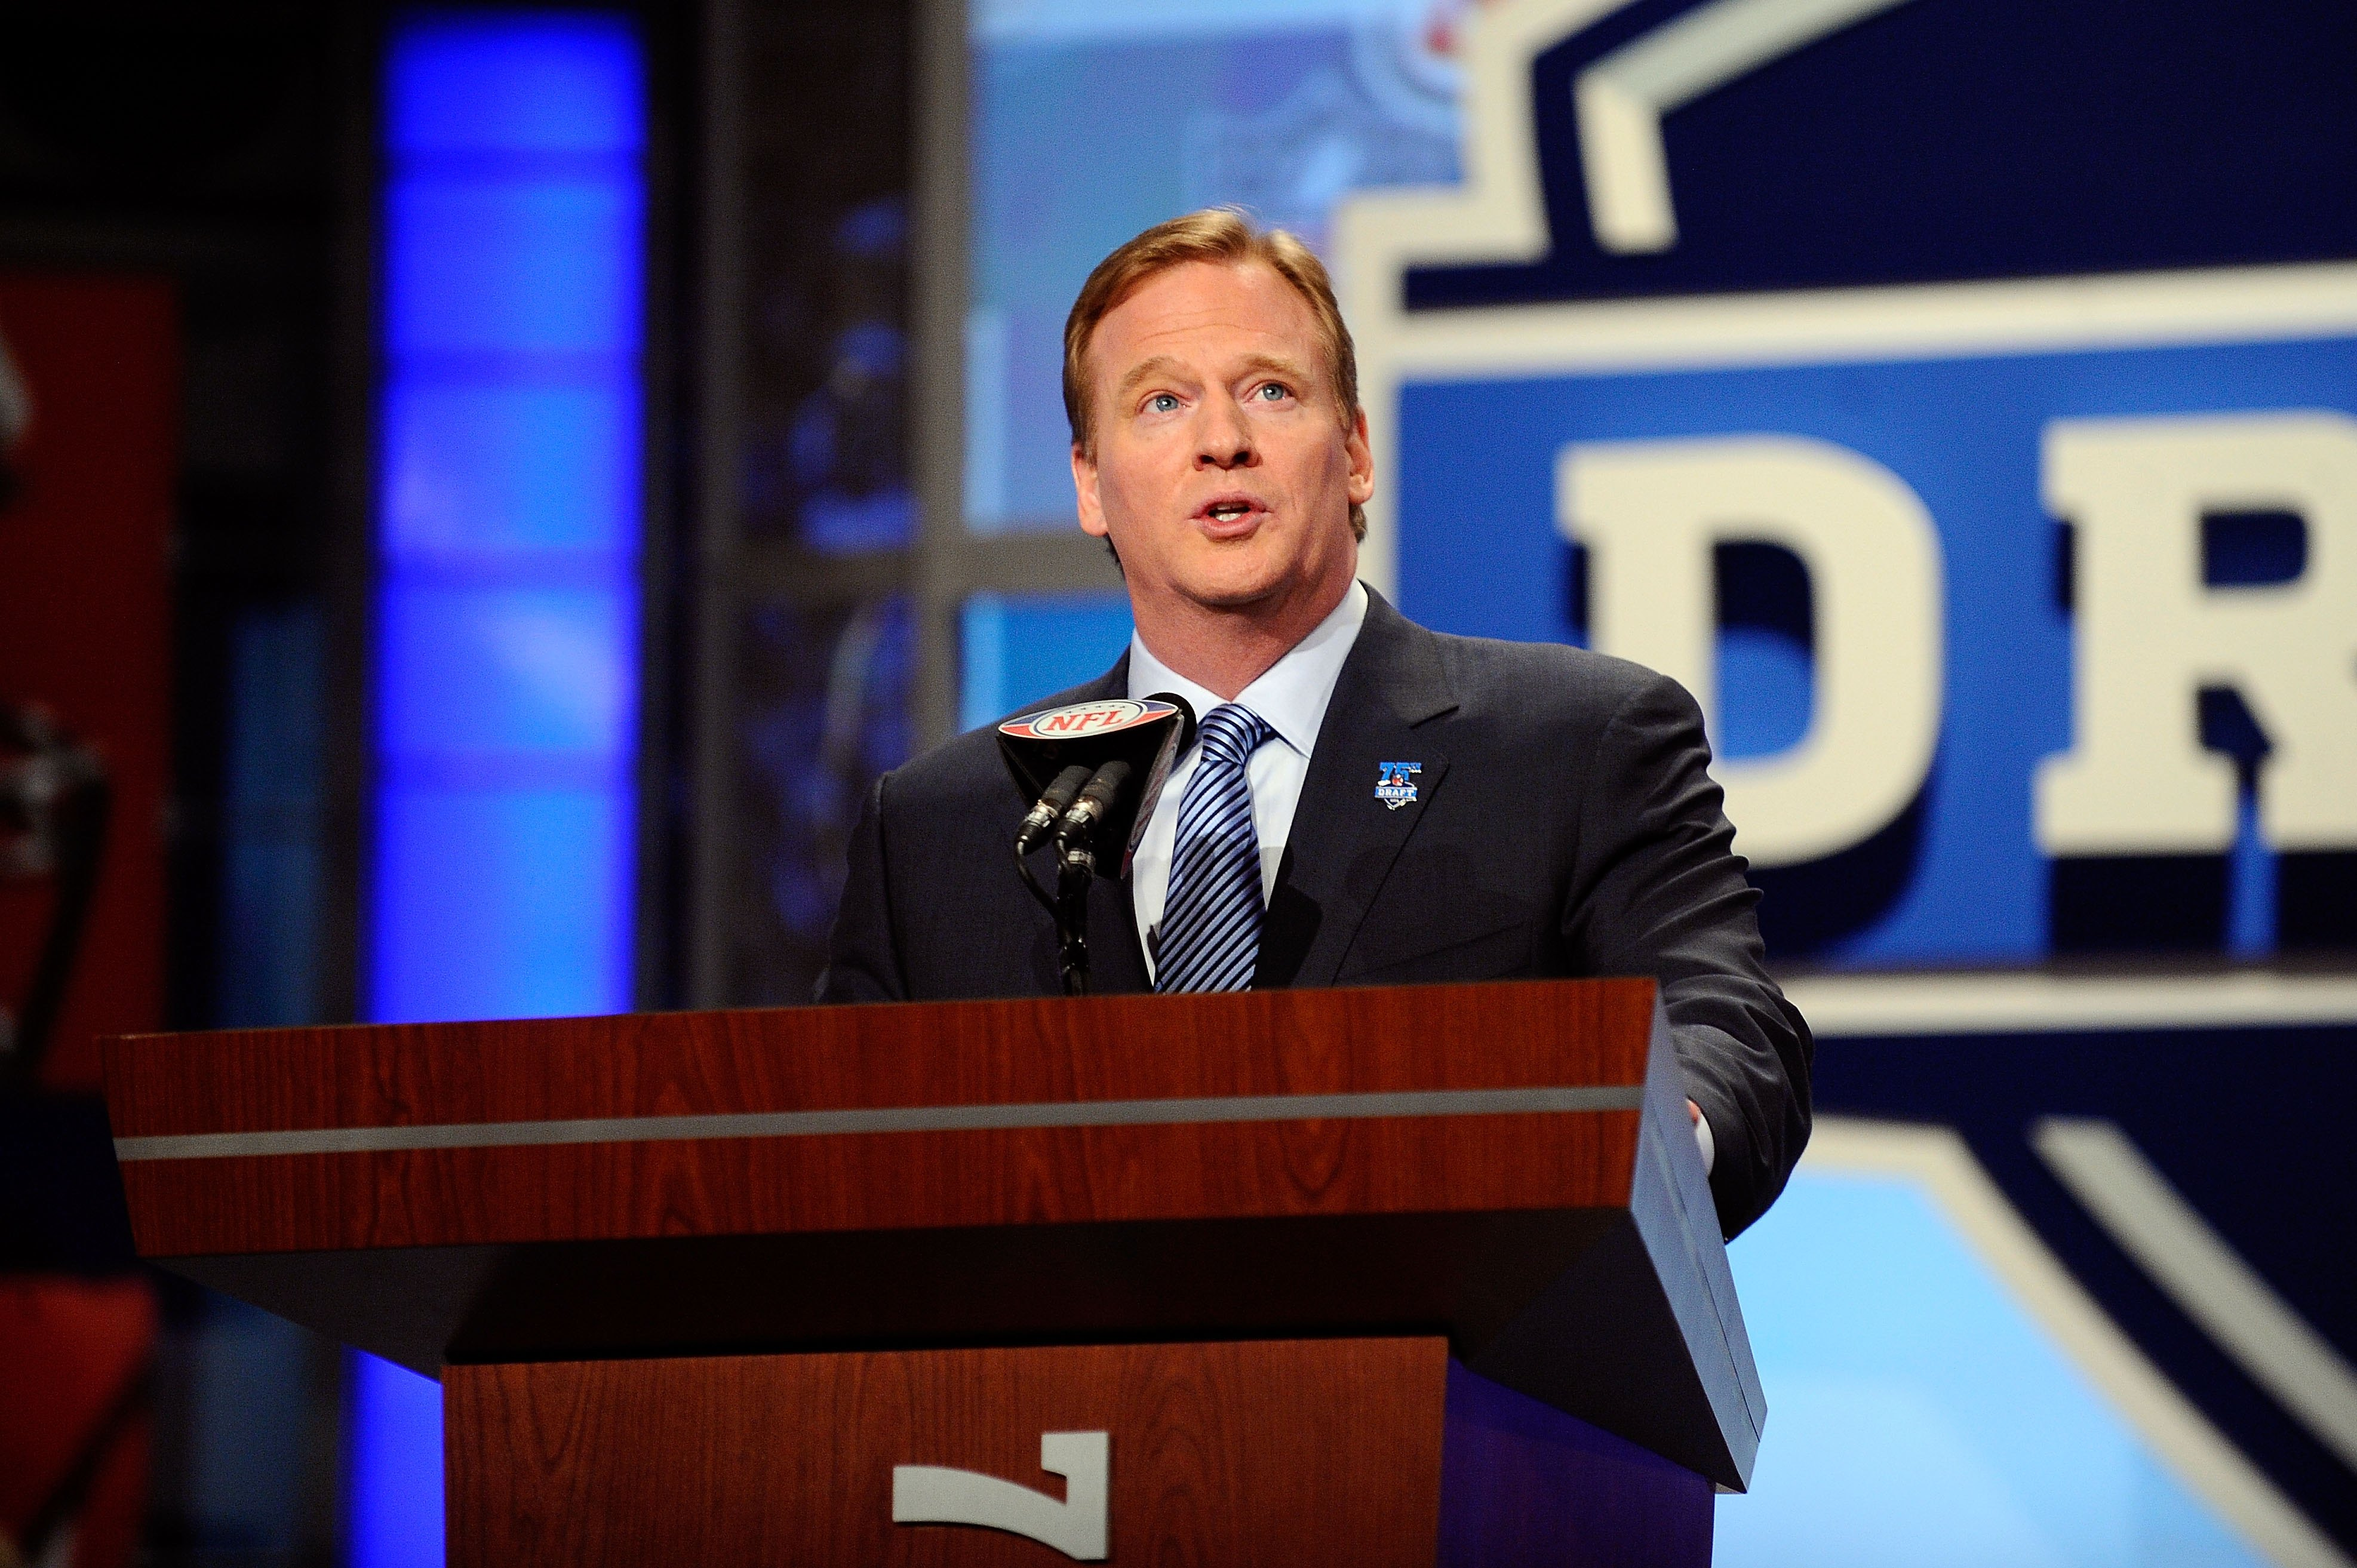 NEW YORK - APRIL 22:  NFL Commissioner Roer Goodell speaks at the podium during the first round of the 2010 NFL Draft at Radio City Music Hall on April 22, 2010 in New York City.  (Photo by Jeff Zelevansky/Getty Images)